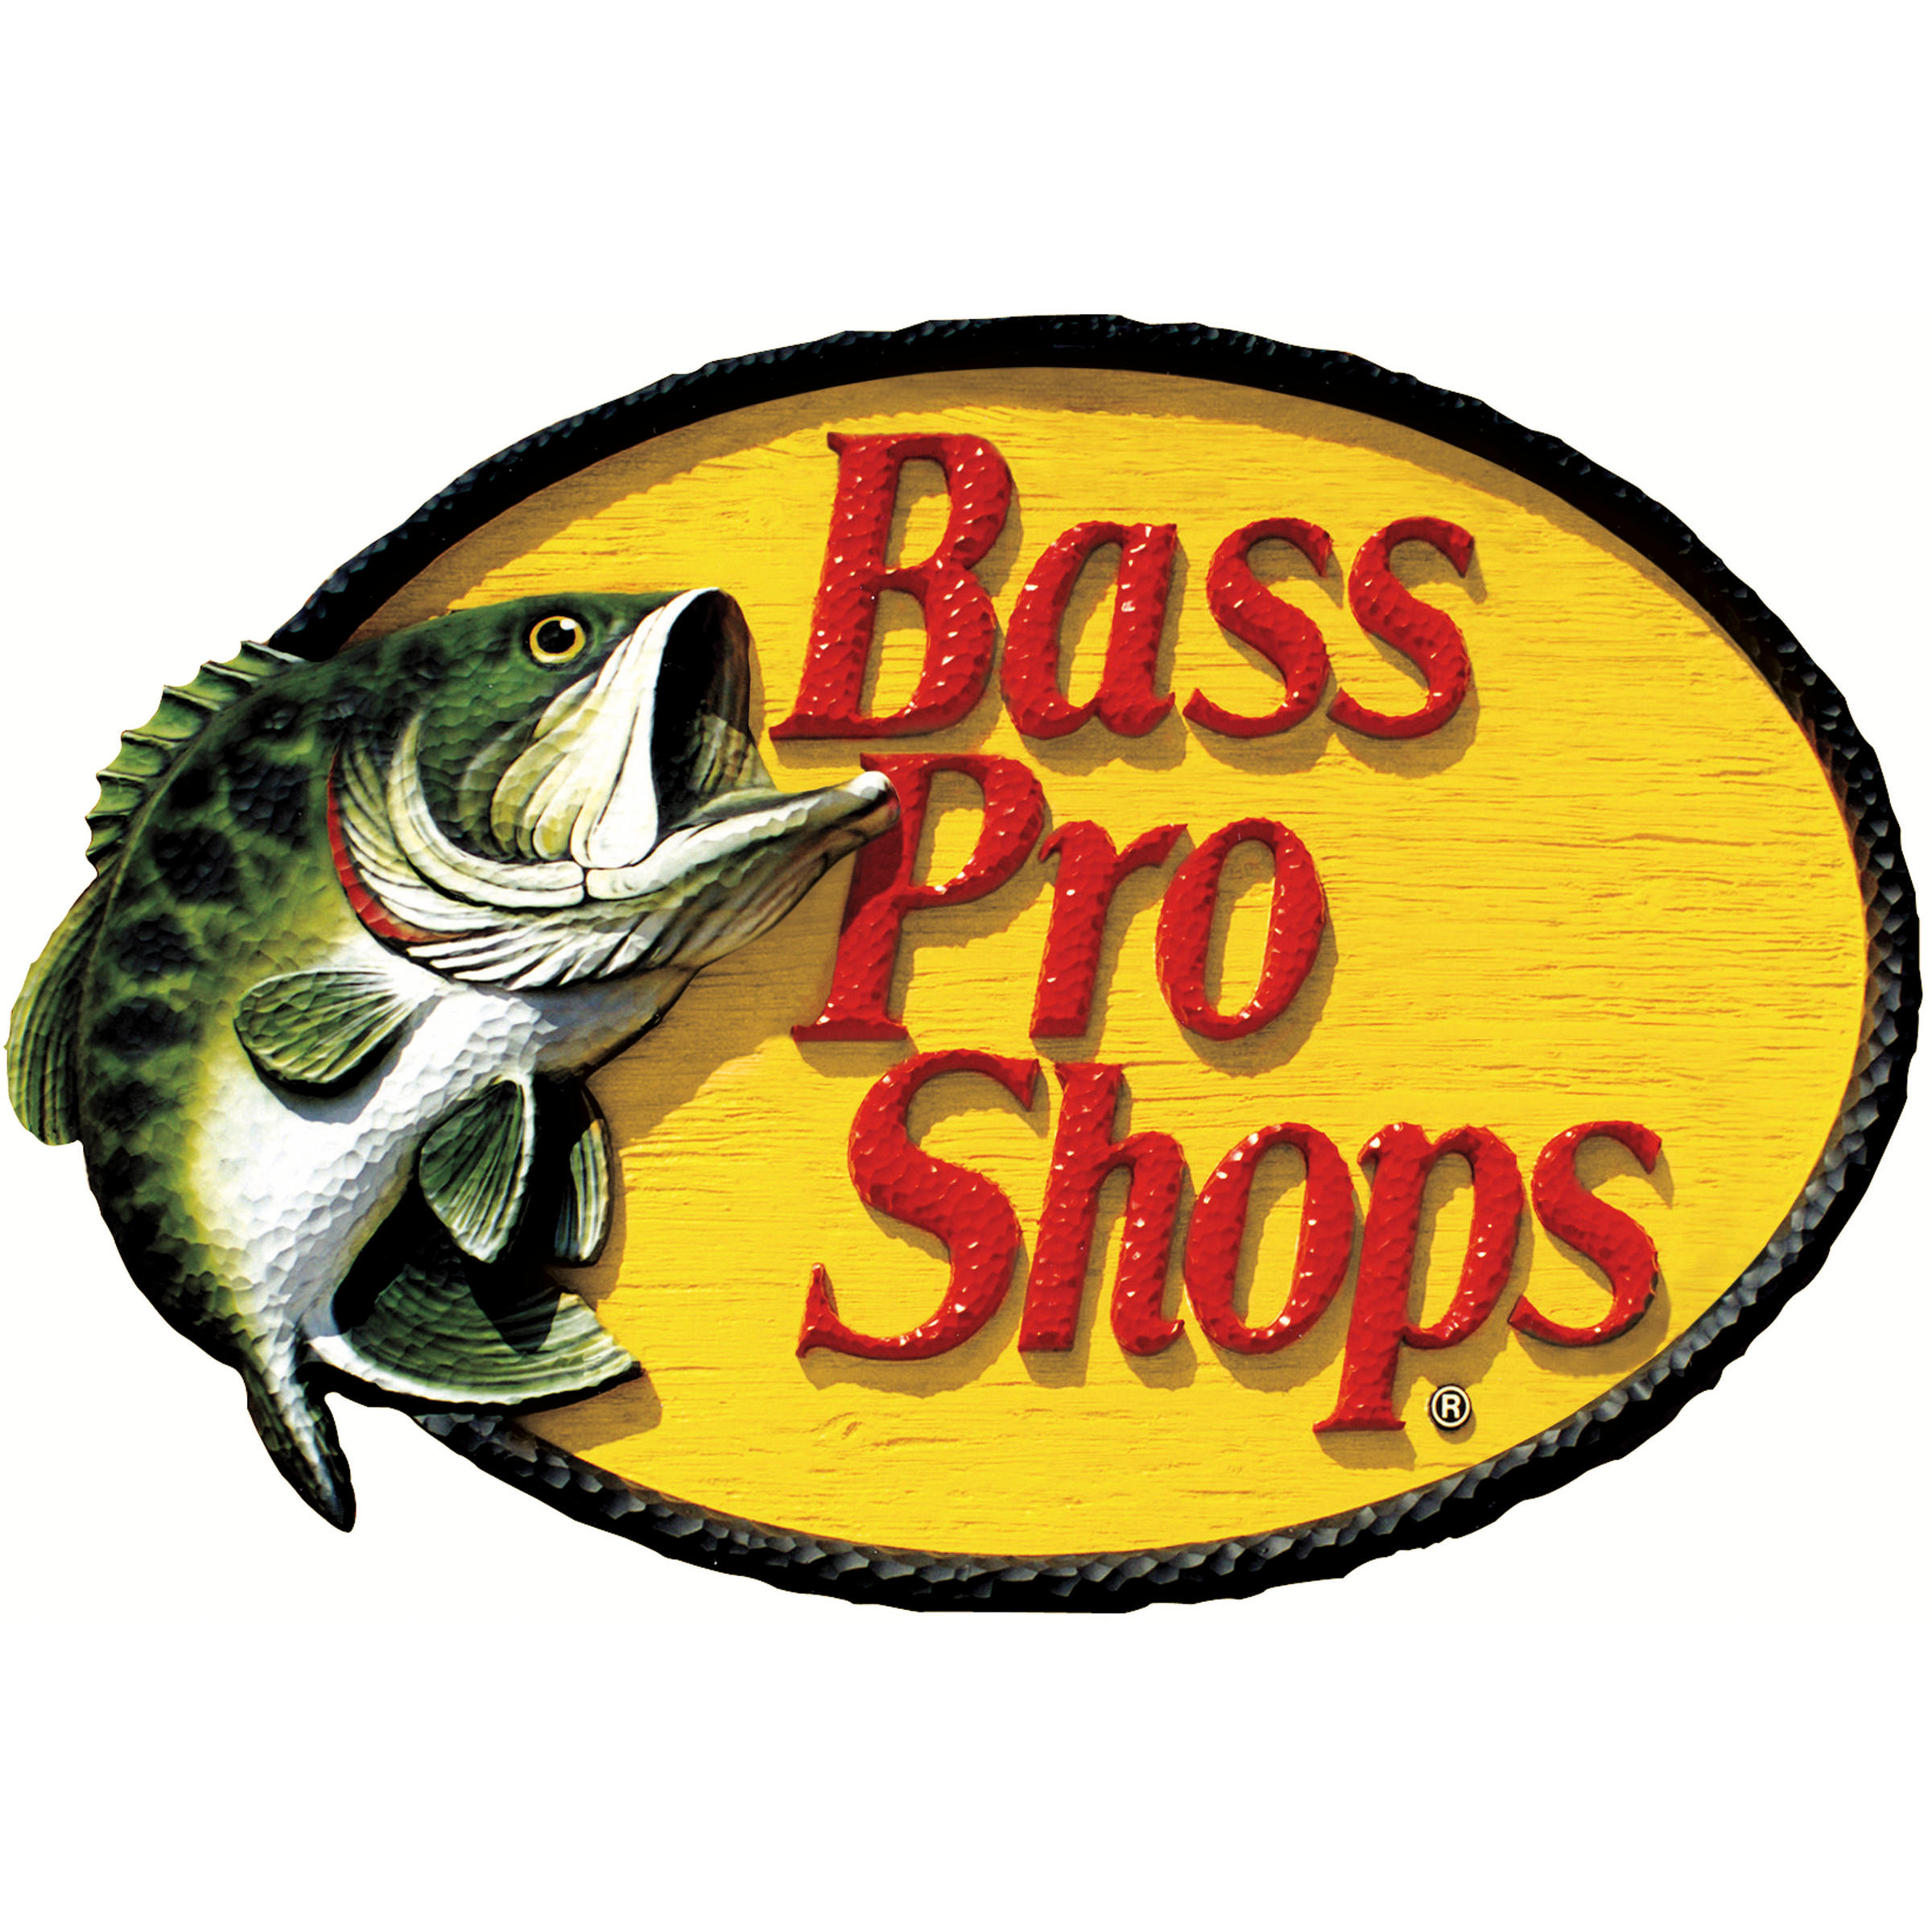 Bass Pro Shops - Las Vegas, NV - Sporting Goods Stores